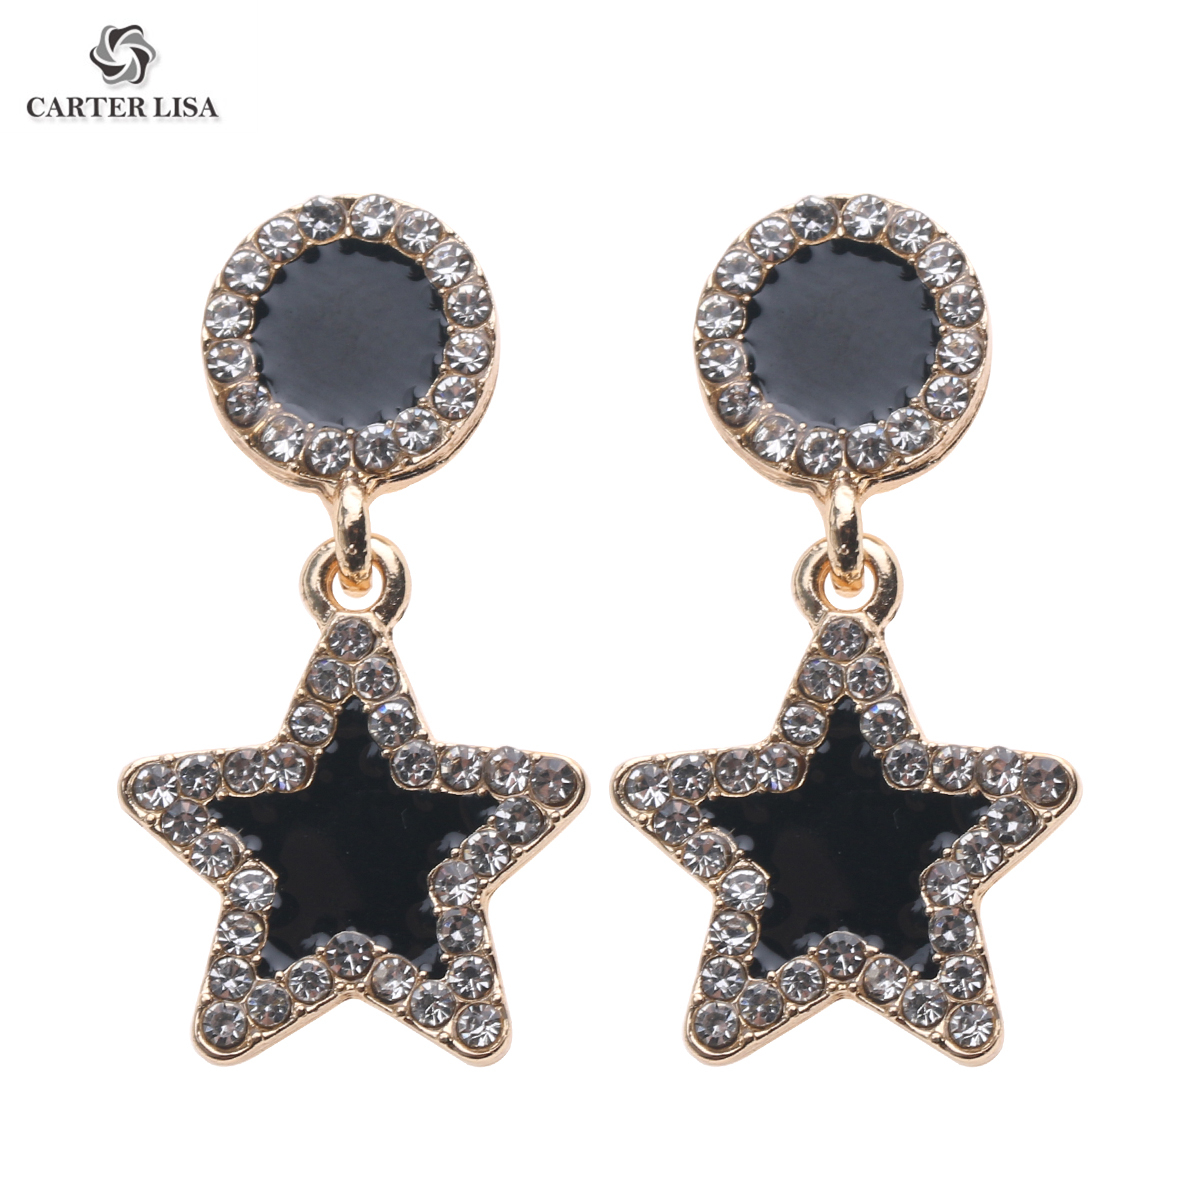 CARTER LISA 2019 New Korean Elegant Crystal Long Trassel Drop Earrings Women Five-pointed Star Dangling Drop Party Earrings